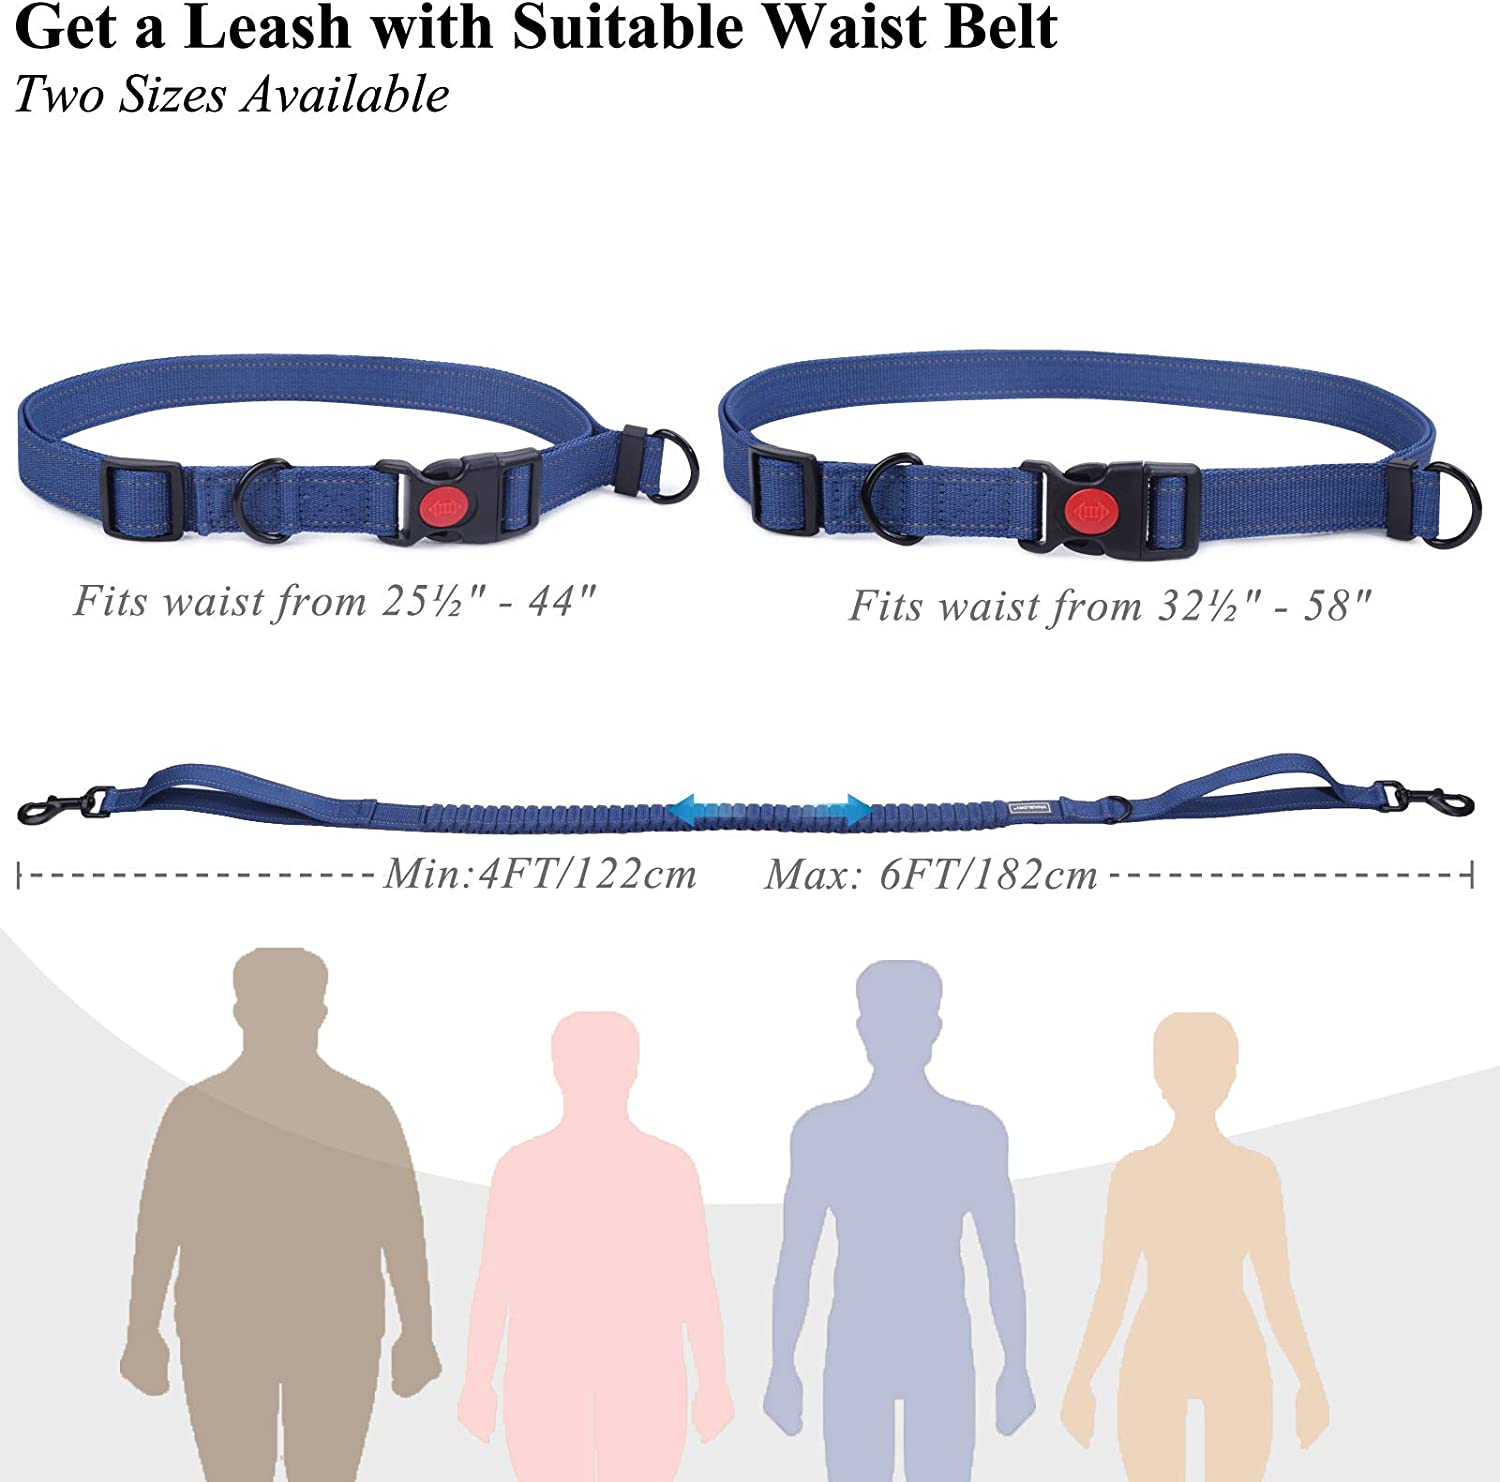 Dual Handles Reflective Waist Leash for Training Running Walking Fits waist from 25/½ to 44 inch Grey VIVAGLORY Hands Free Dog Leash with Retractable Wavelength Bungee for Small Medium and Large Dogs